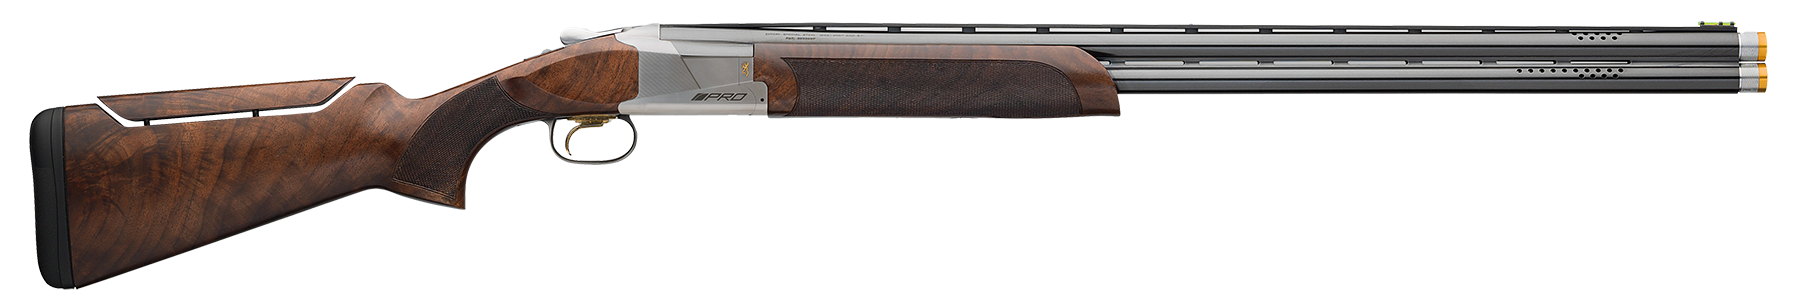 Browning Citori 725 Pro Sporting Over/Under Shotgun 2.75'' 20 Gauge 30'' Silver Nitride Steel/Blued Barrel - Black Walnut Adjustable Comb